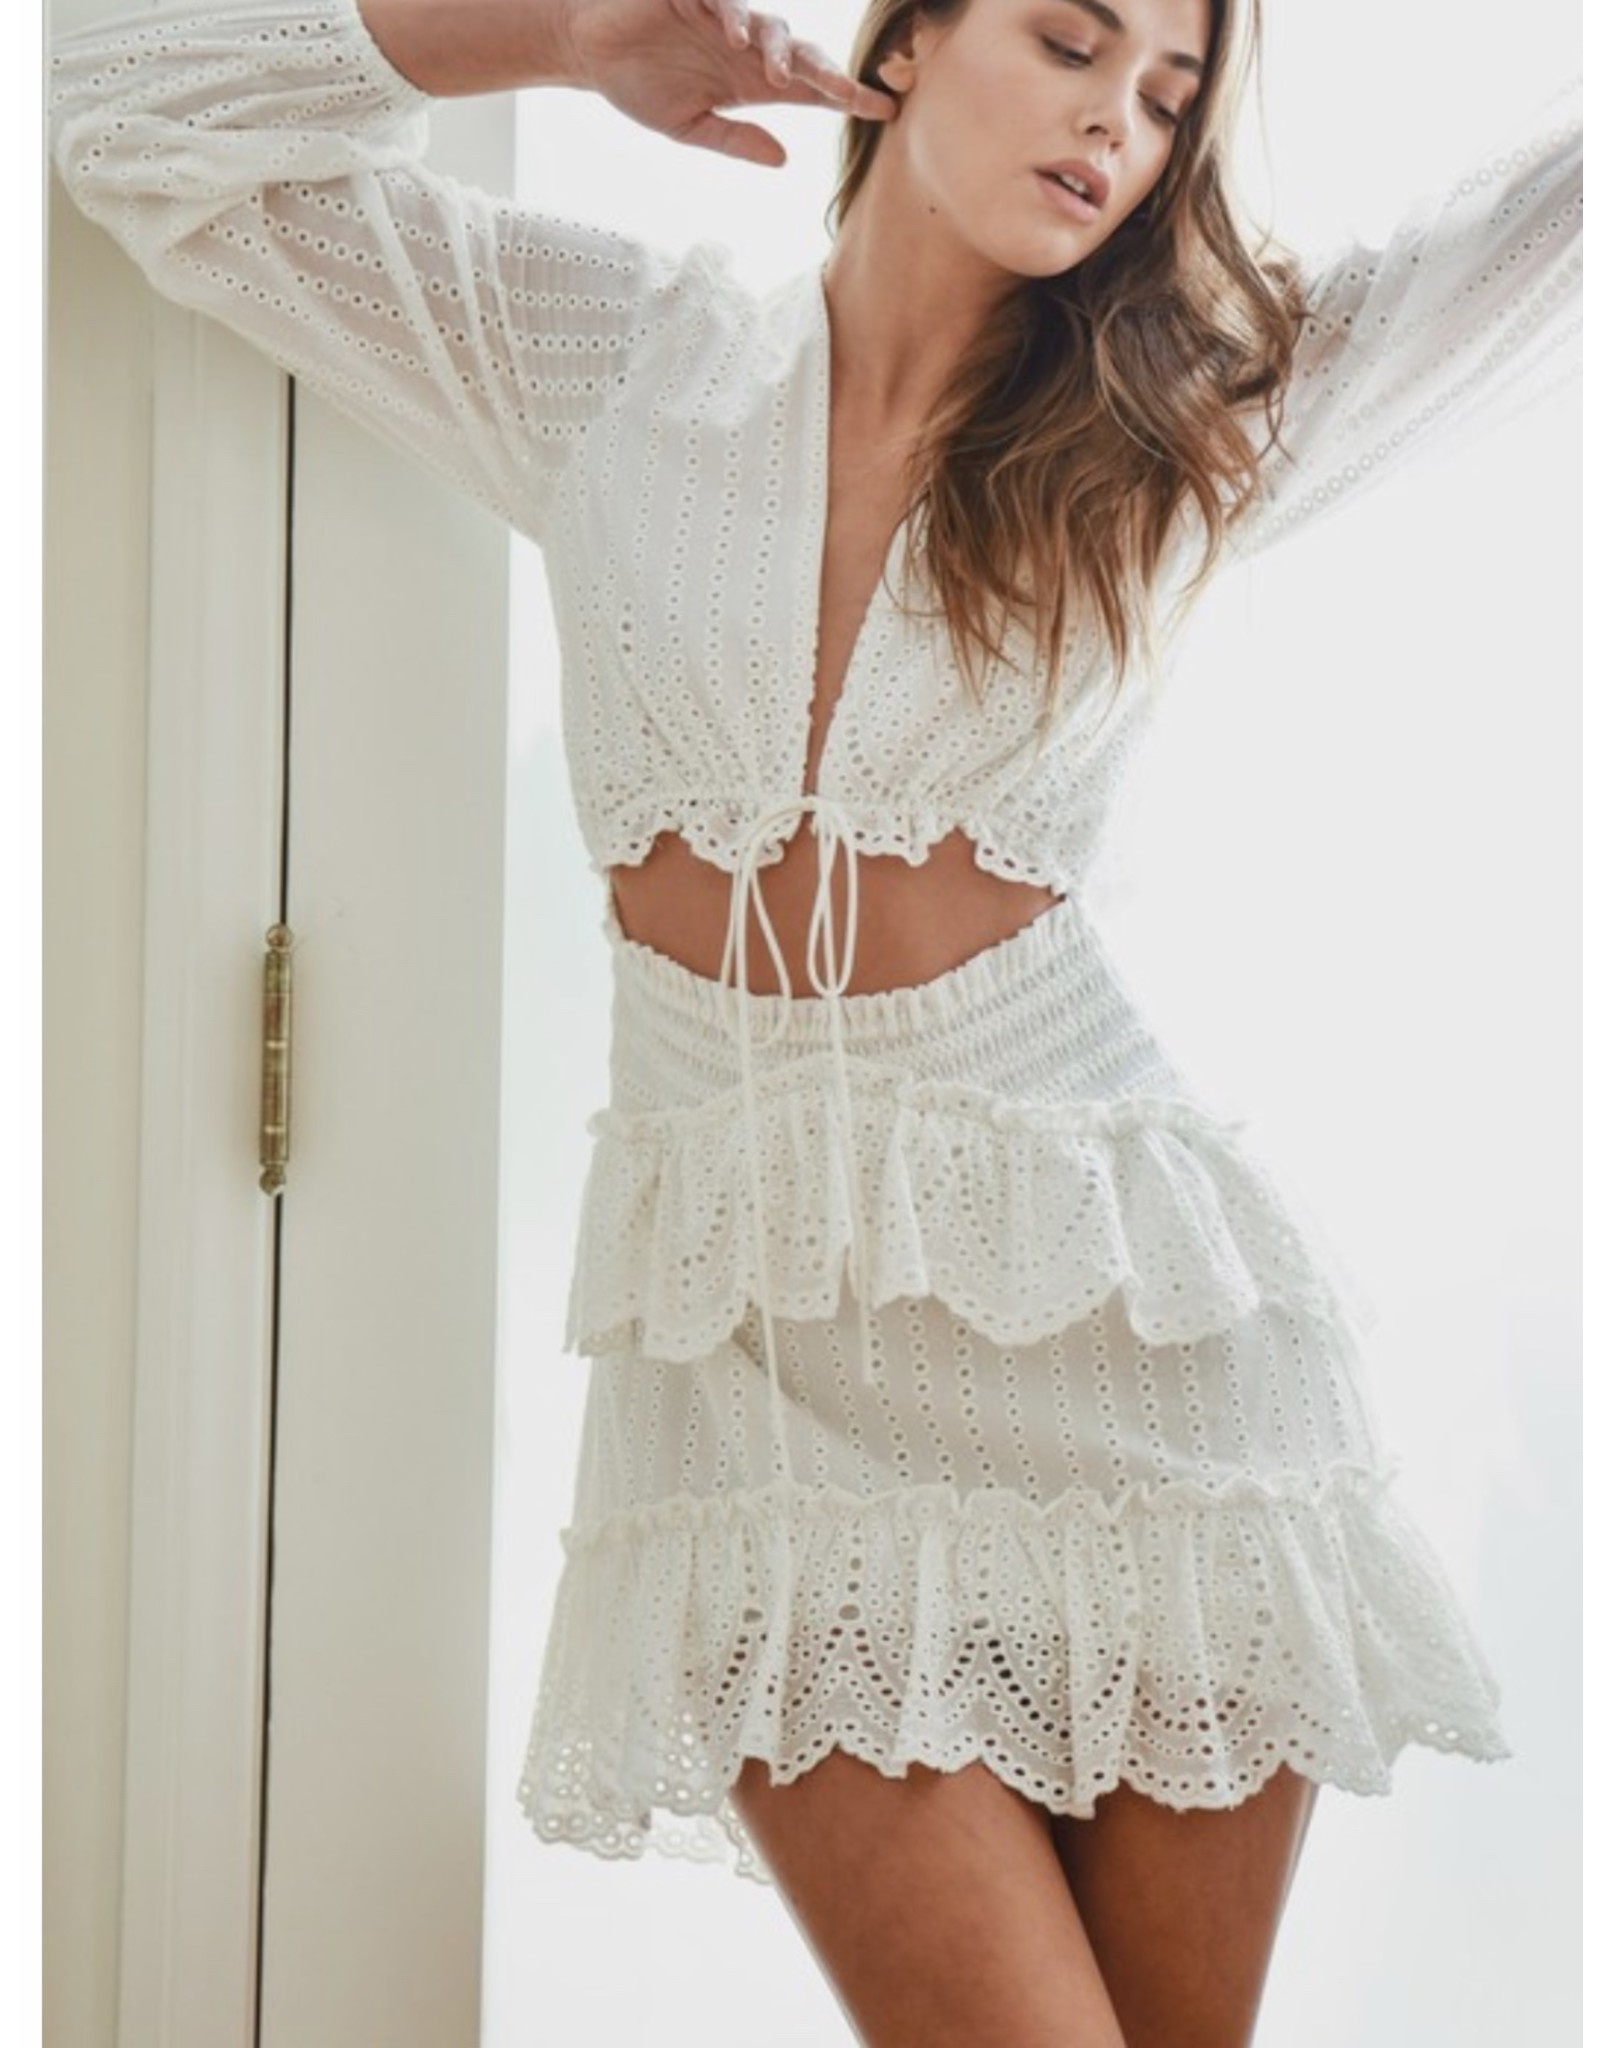 MABLE Eyelet Dress - Off White